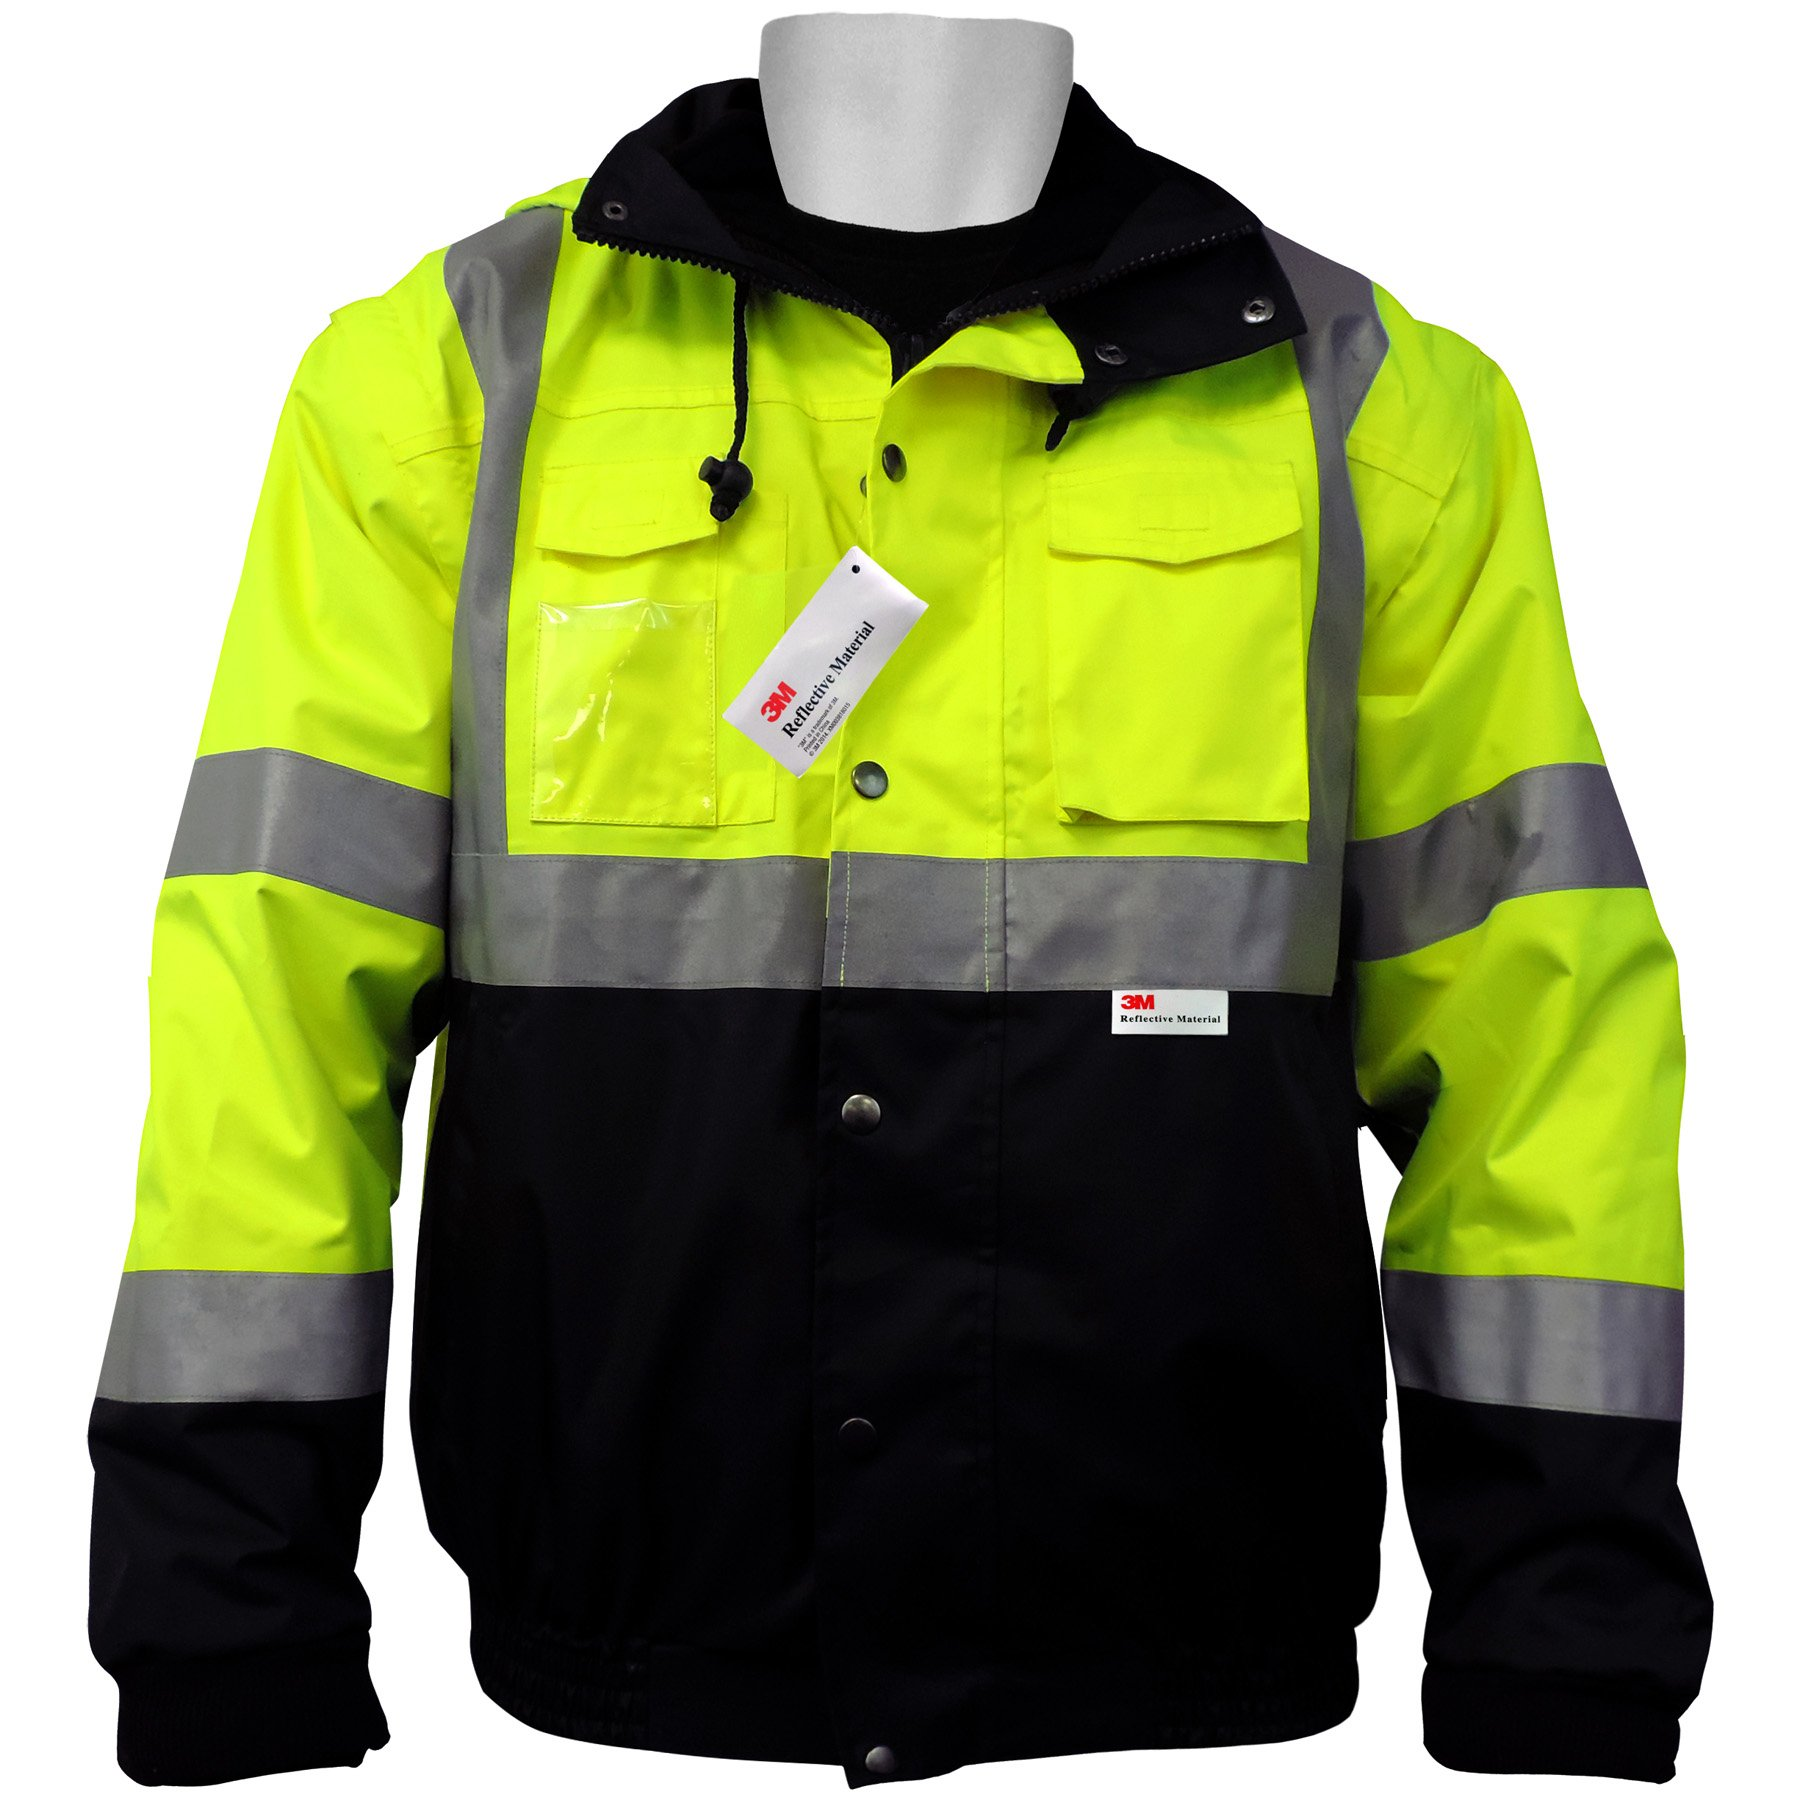 Global GLO-B1 FrogWear Polyurethane Class 3 Five in One Winter Jacket with 3M Scotchlite